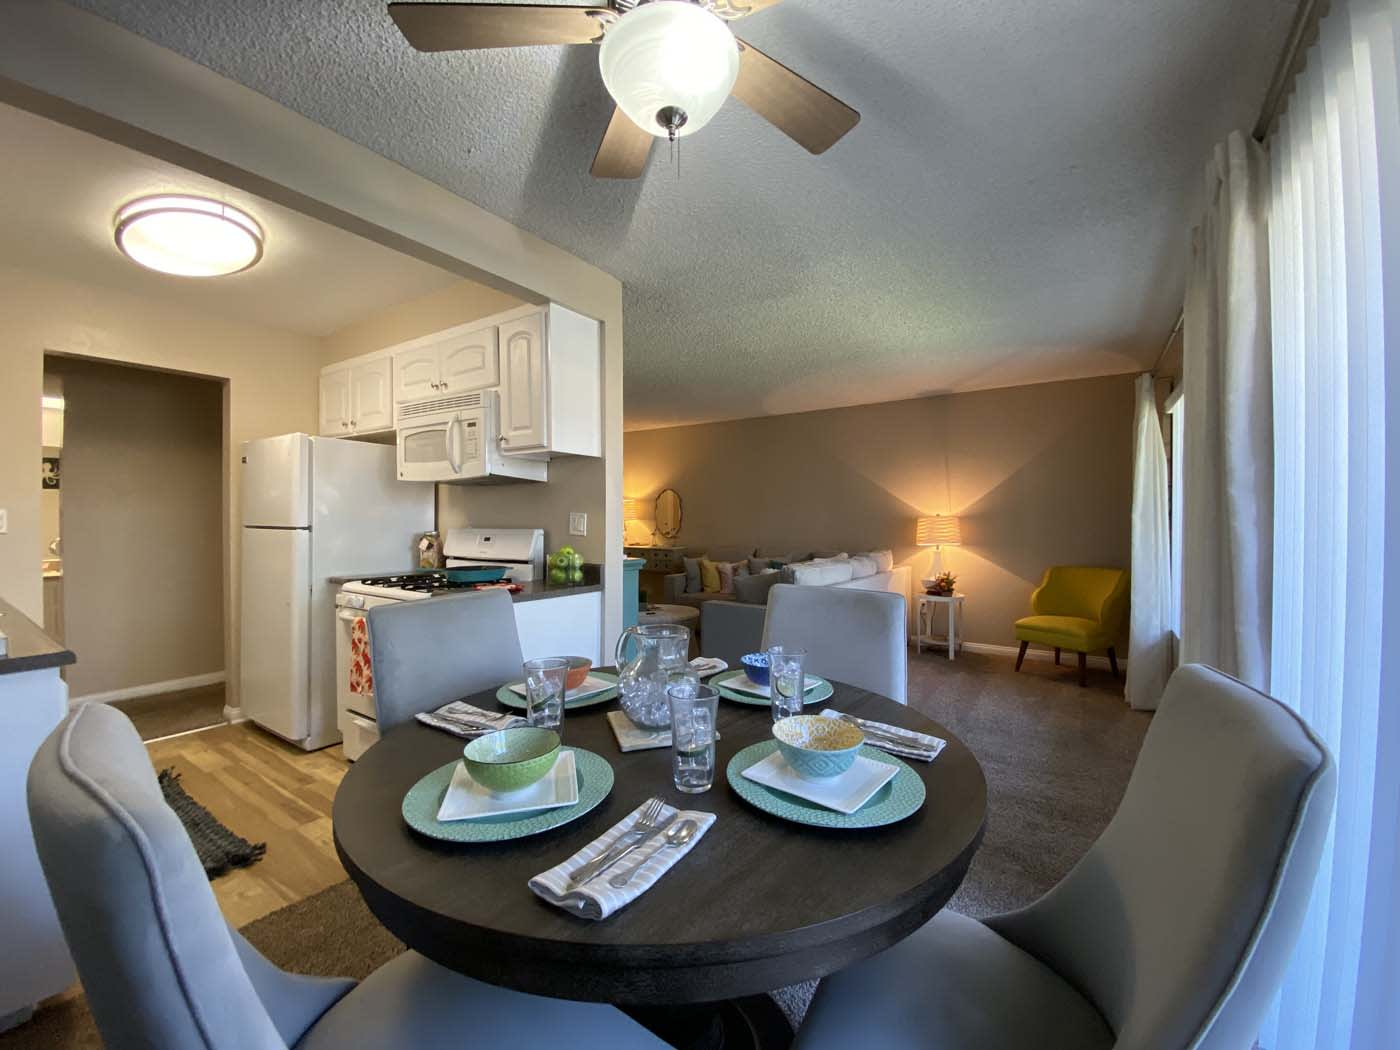 Dining Room With Ceiling Fan at Stoneridge Apartment, California